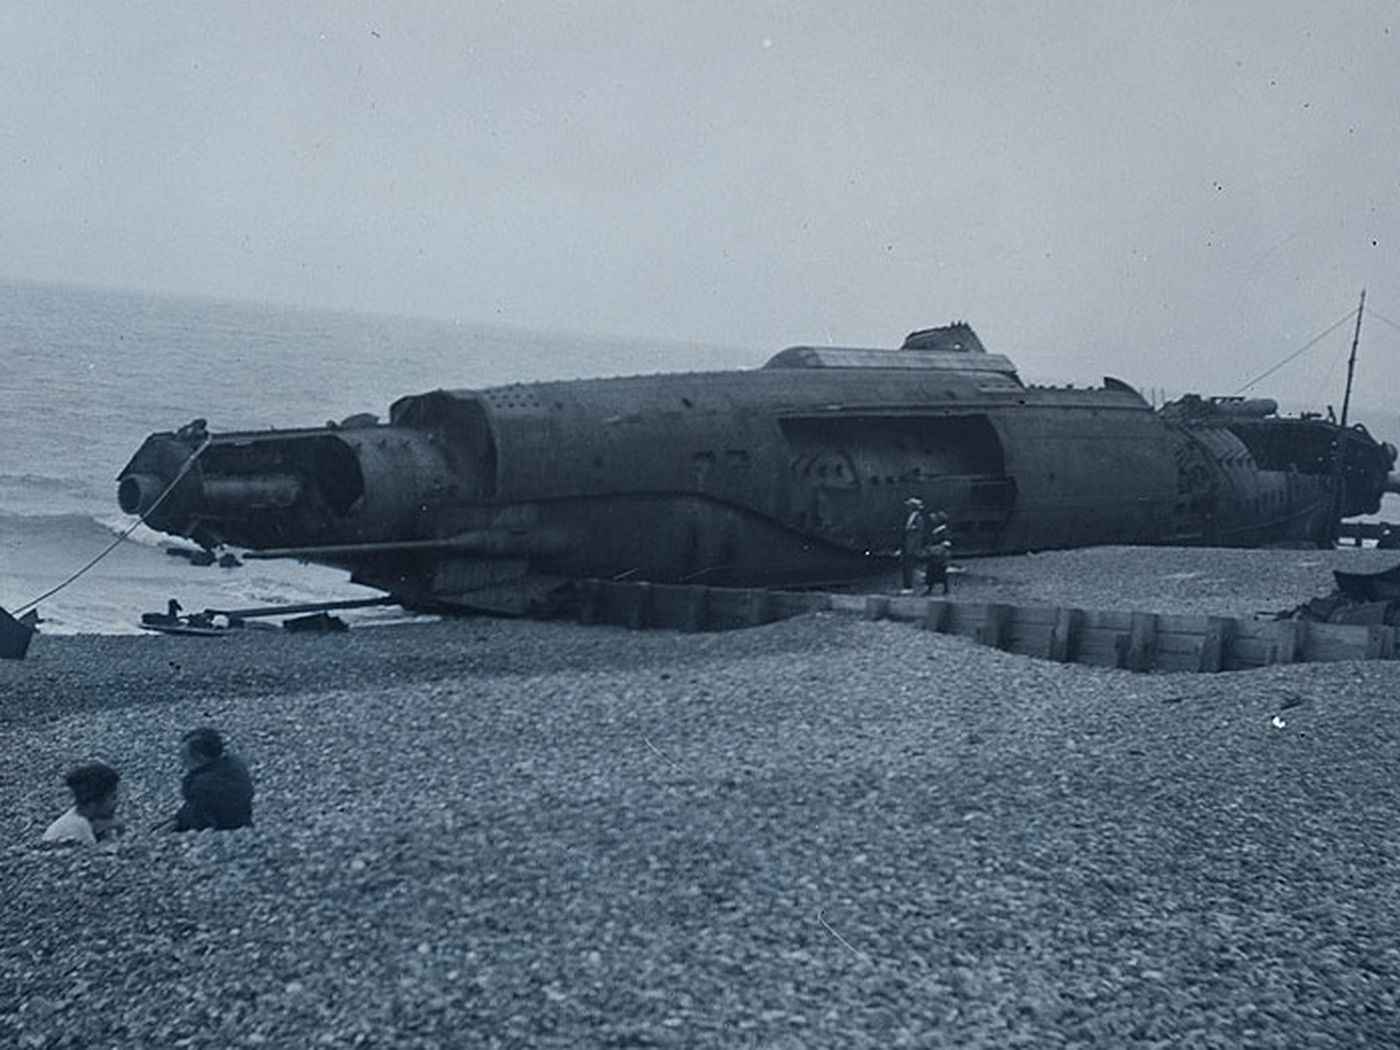 WWI submarine graveyard discovered by underwater archaeologists